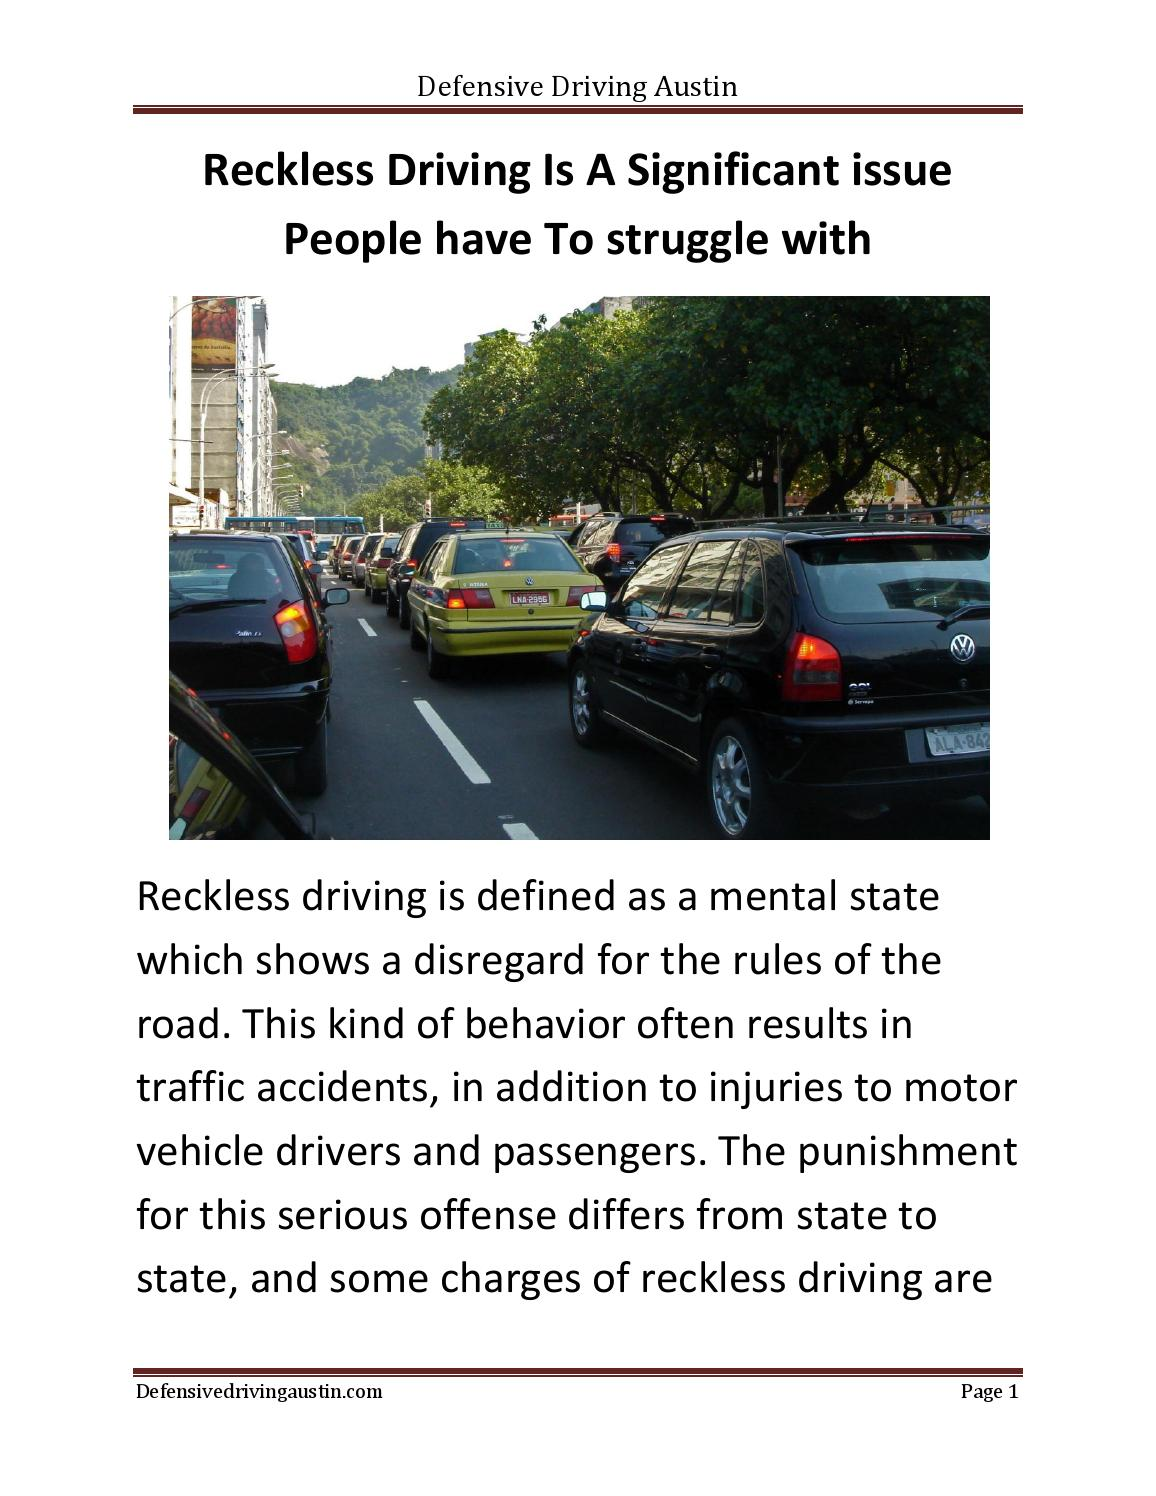 reckless driving is a significant issue people have to struggle with